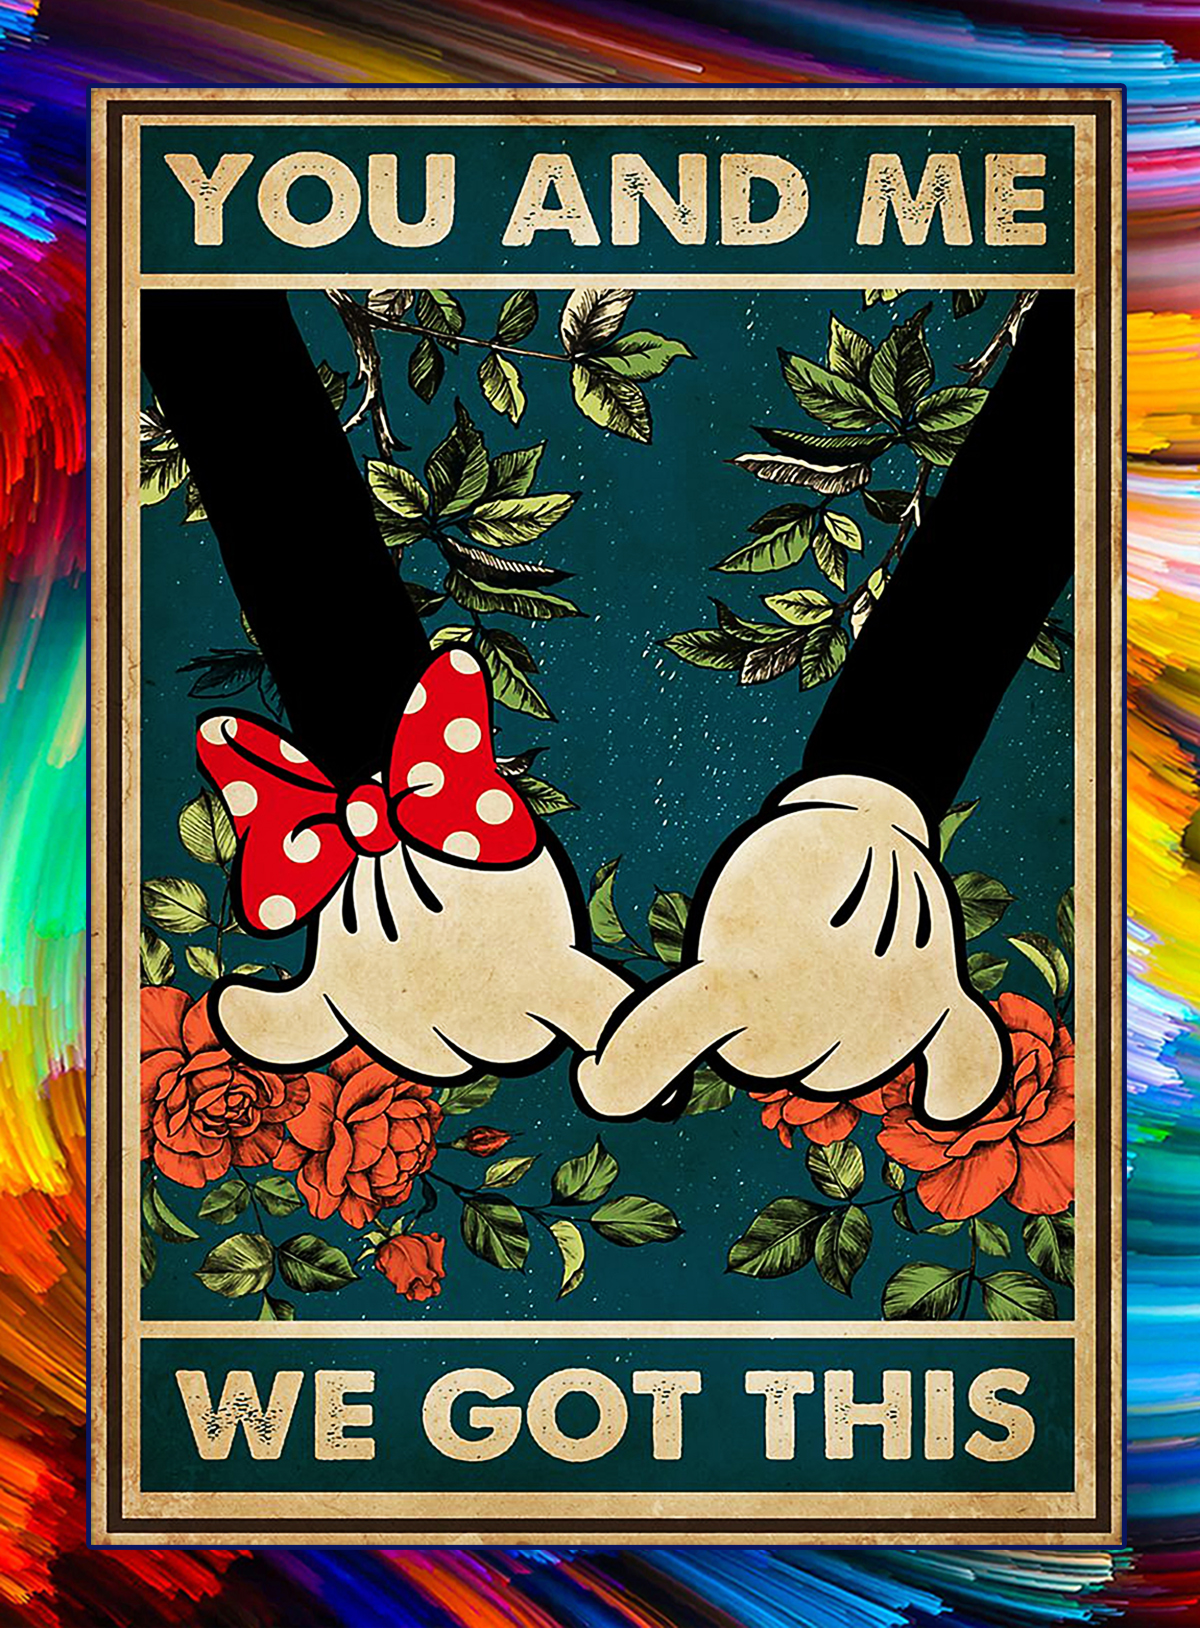 You and me we got this mickey and minnie poster - A1